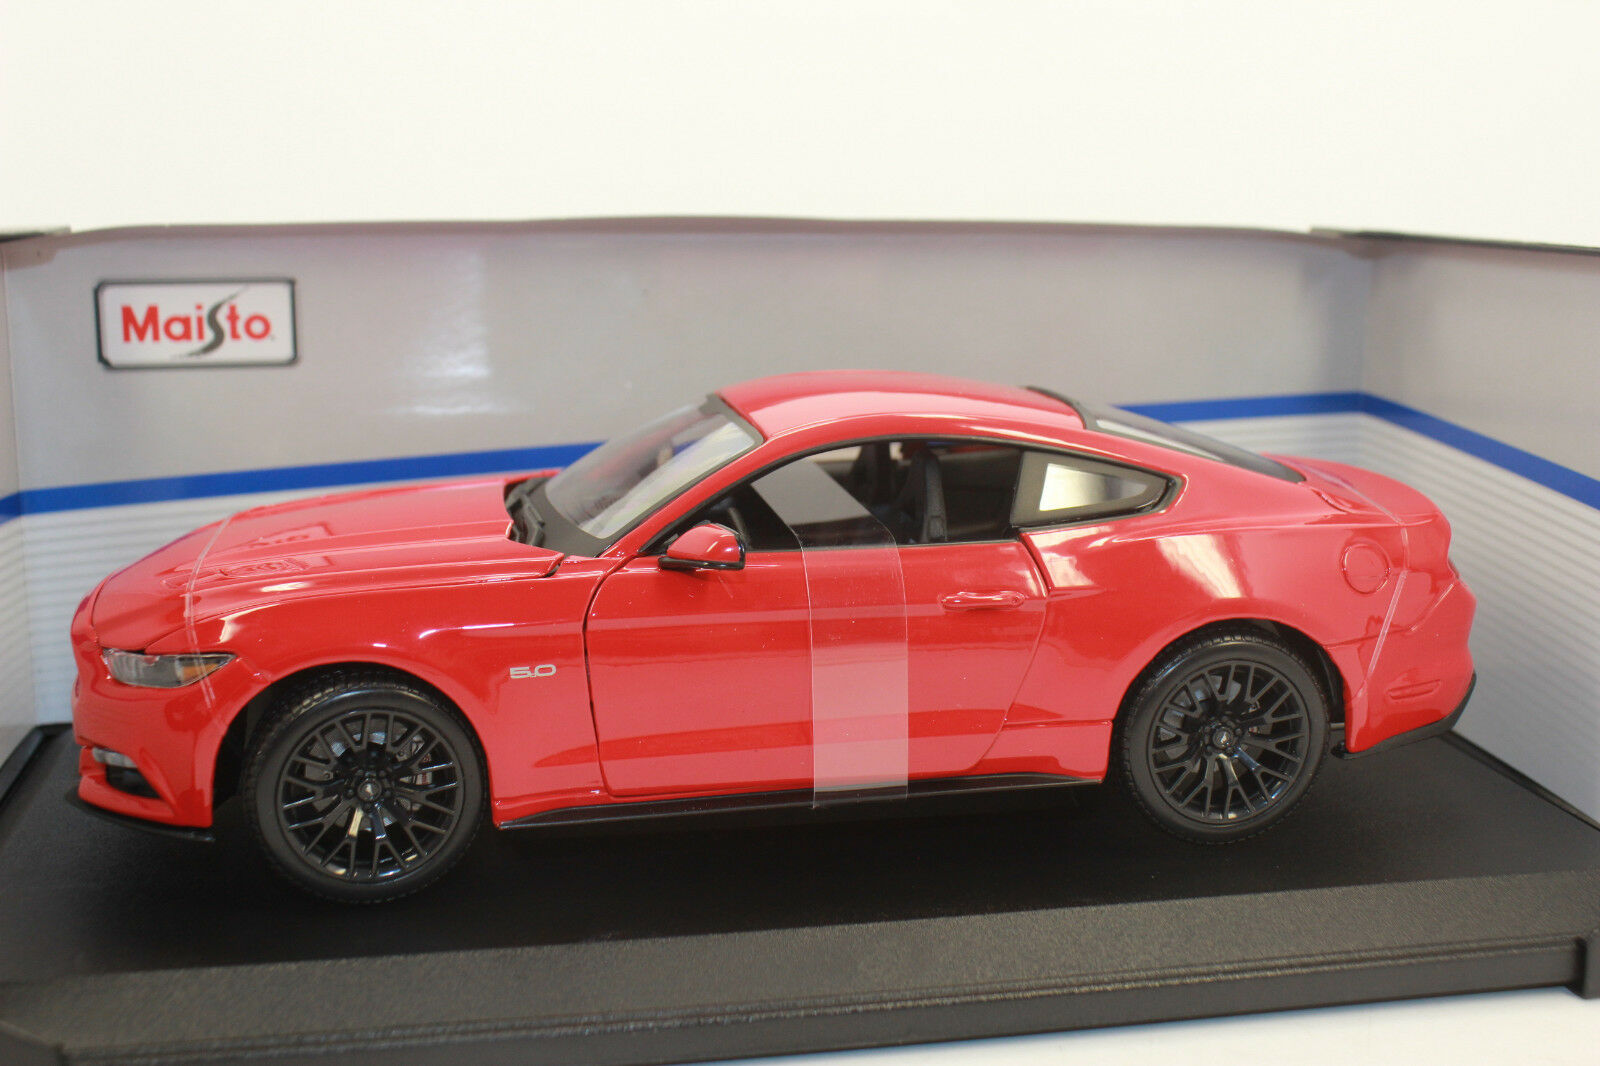 MAISTO 31197 FORD MUSTANG 5.0 2015 Red 1 18 NEW WITH ORIGINAL BOX